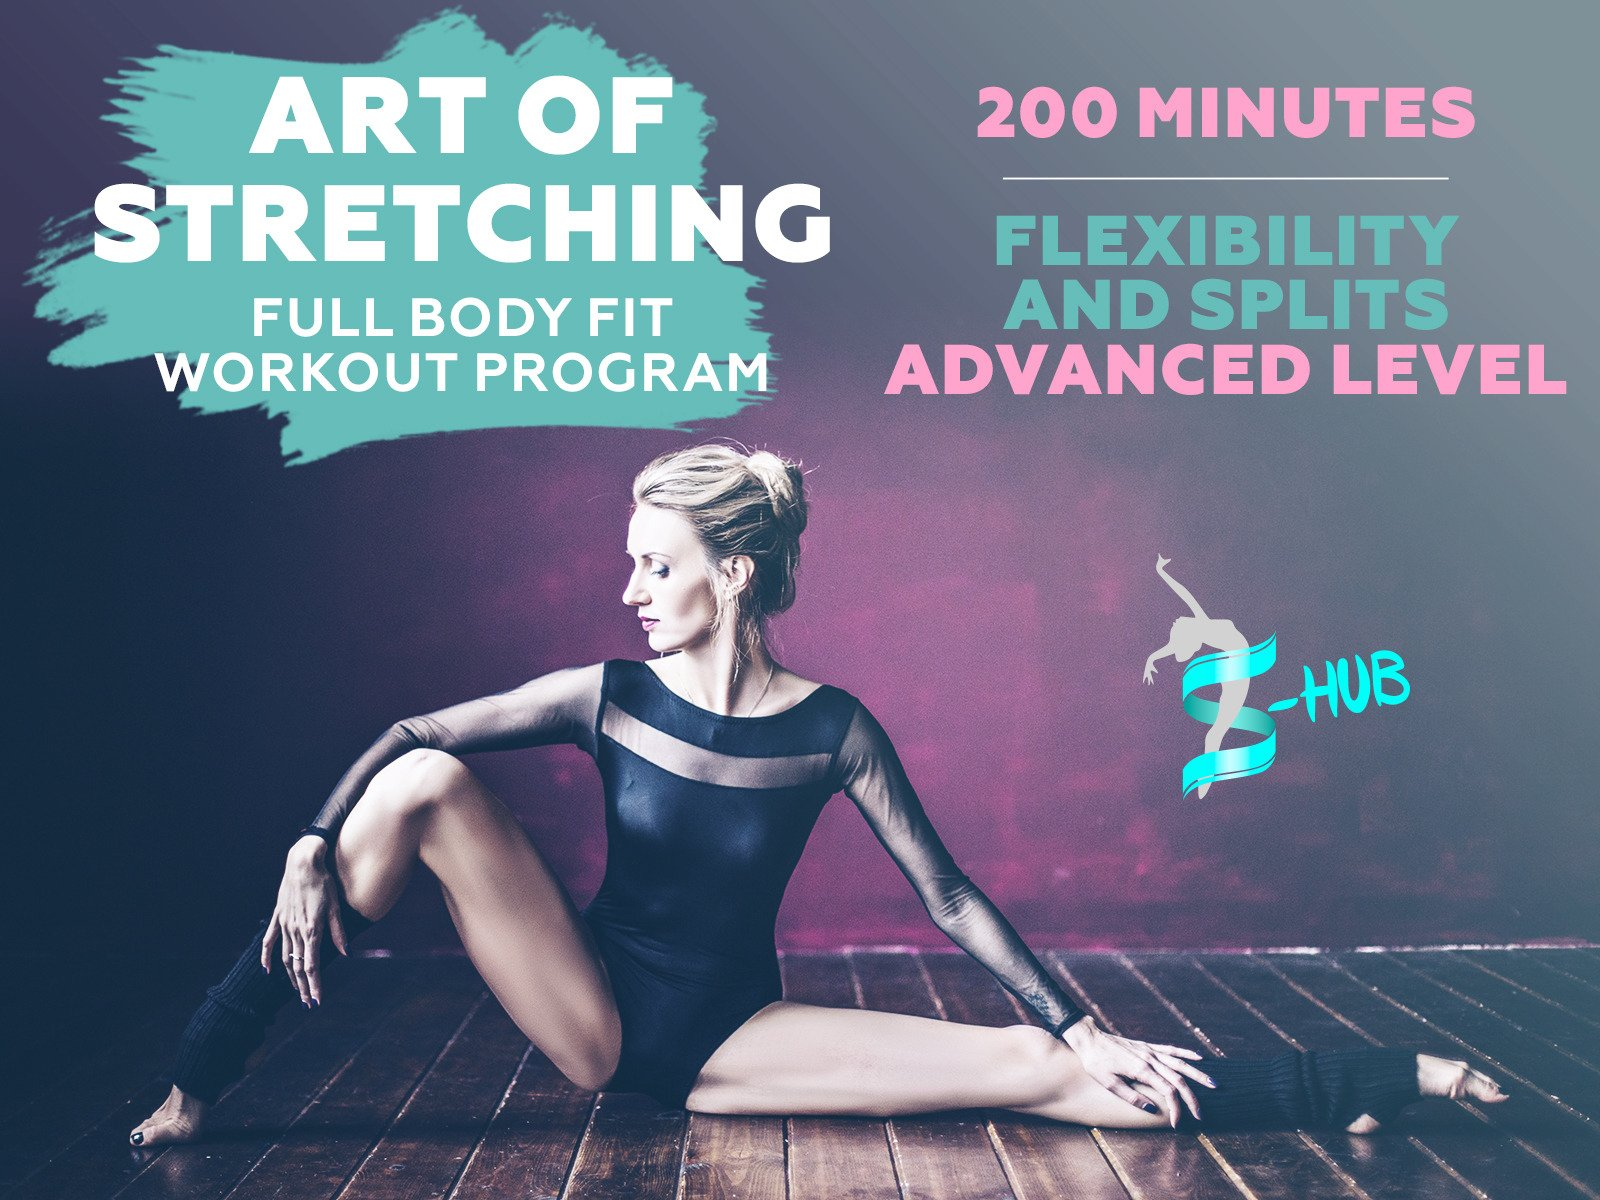 Art of stretching. 200 minutes Full Body Fit Workout Program. Flexibility and Splits. - Season 2